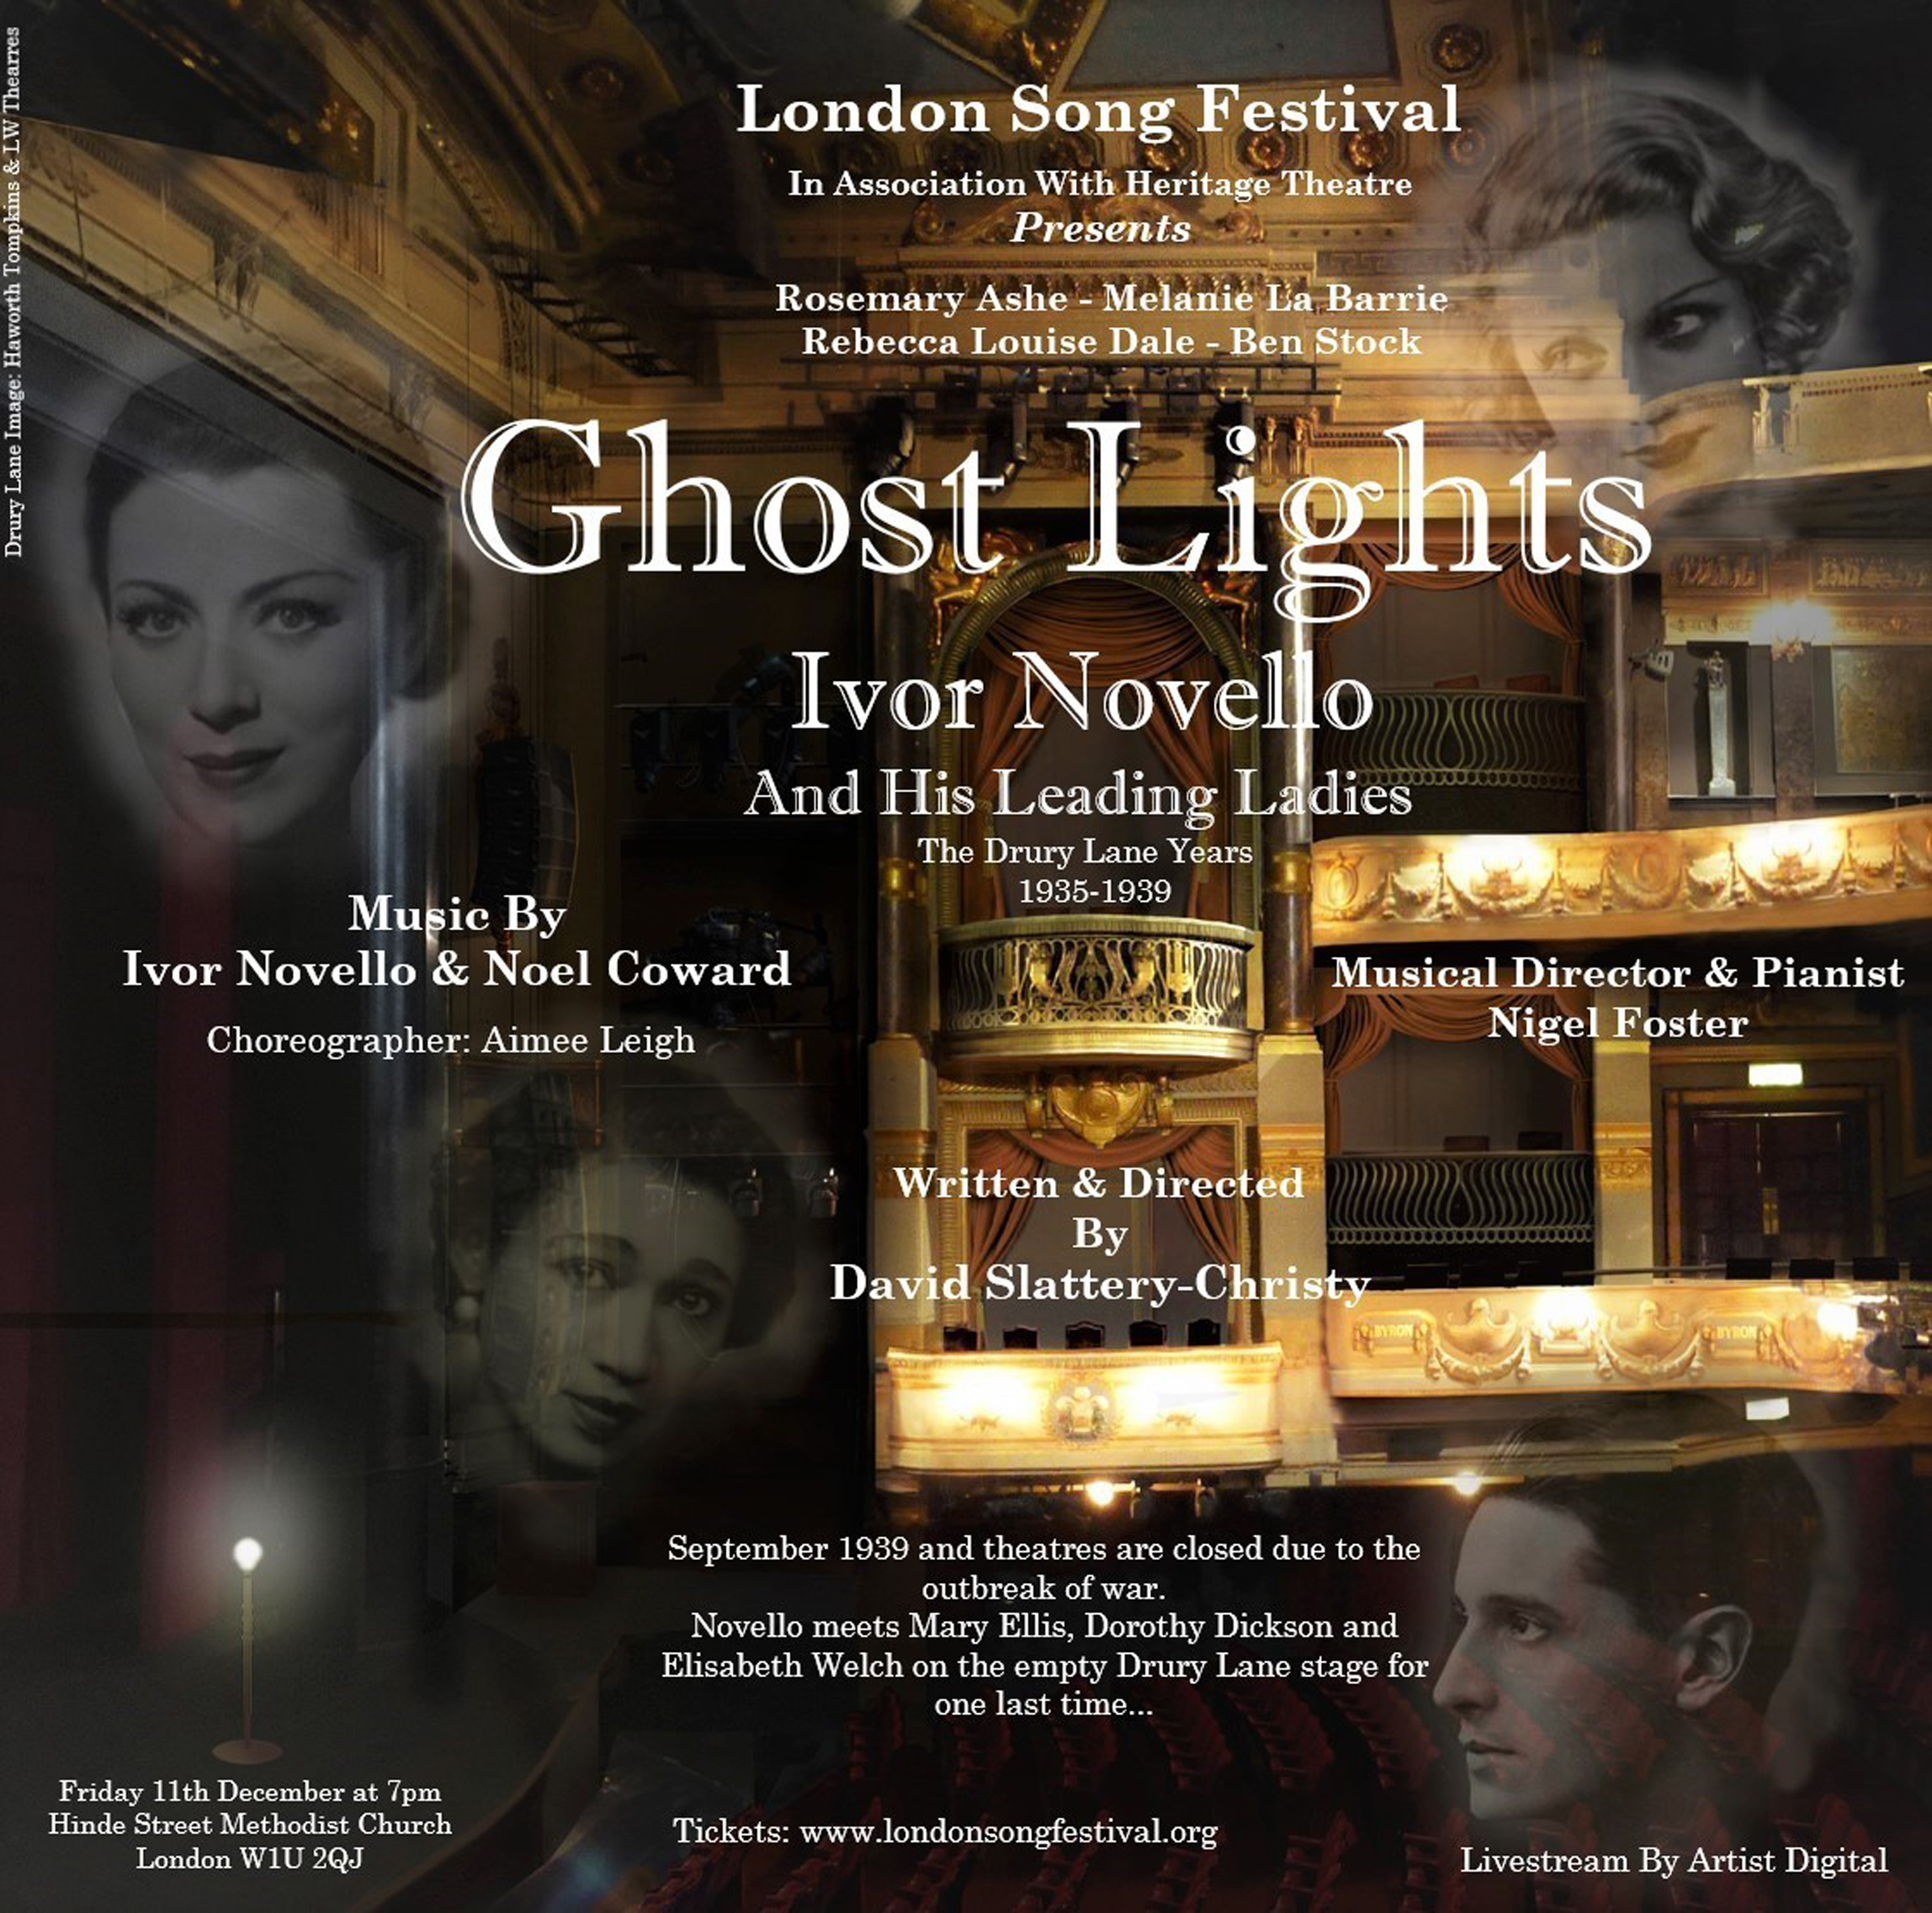 London Song Festival Presents GHOST LIGHTS: IVOR NOVELLO & HIS LEADING LADIES